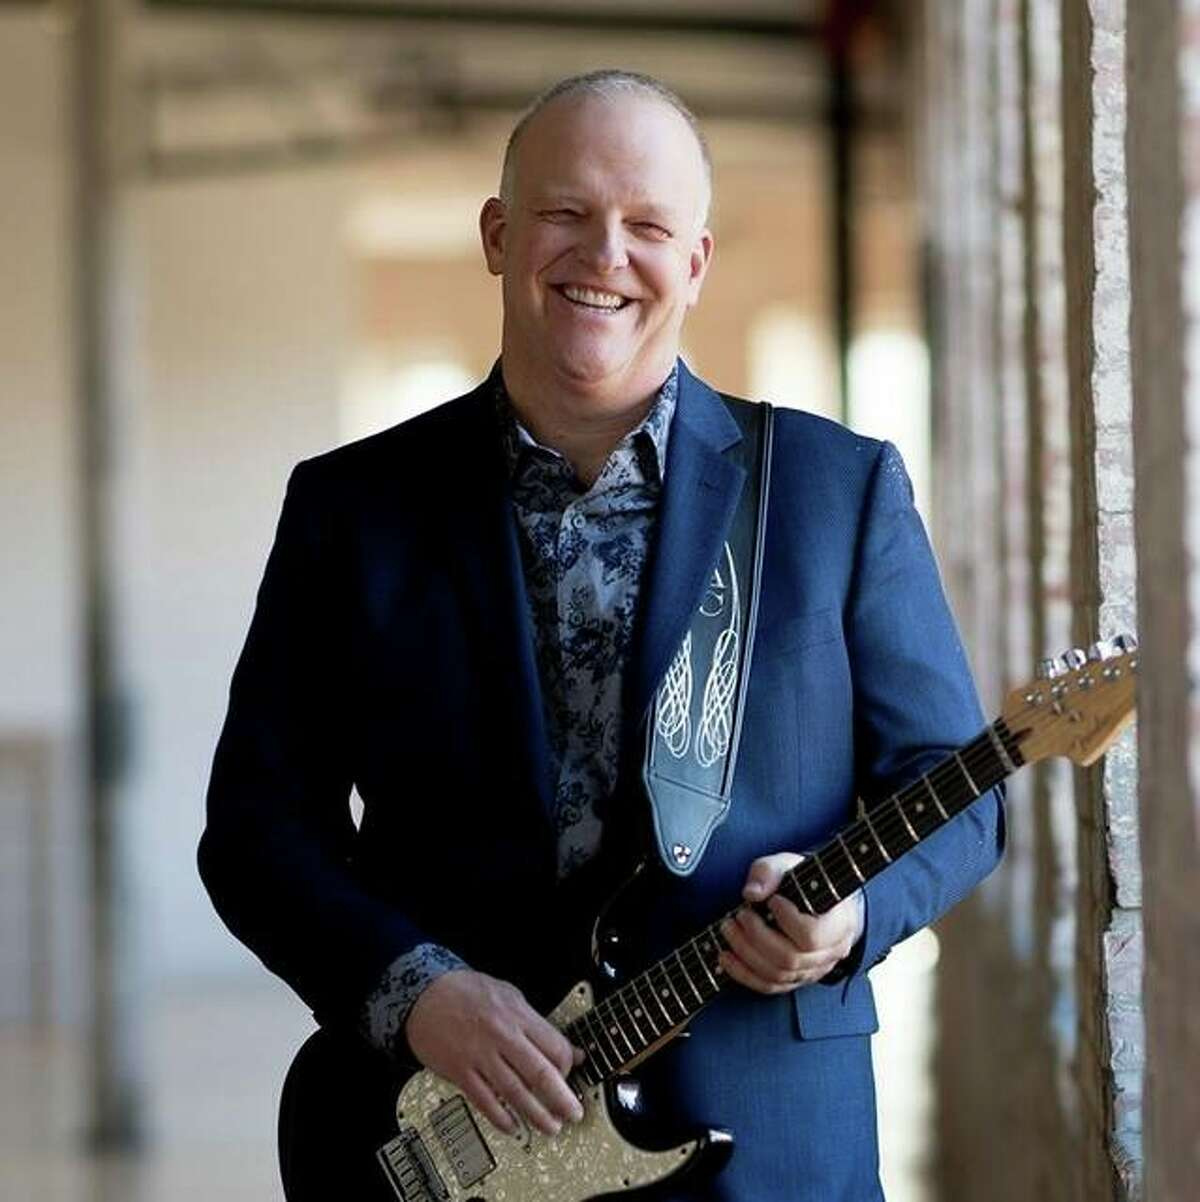 Albert Cummings will perform at The Wildey Theatre, 252 N. Main St., in Edwardsville, at 8 p.m. on Wednesday, Sept. 22.